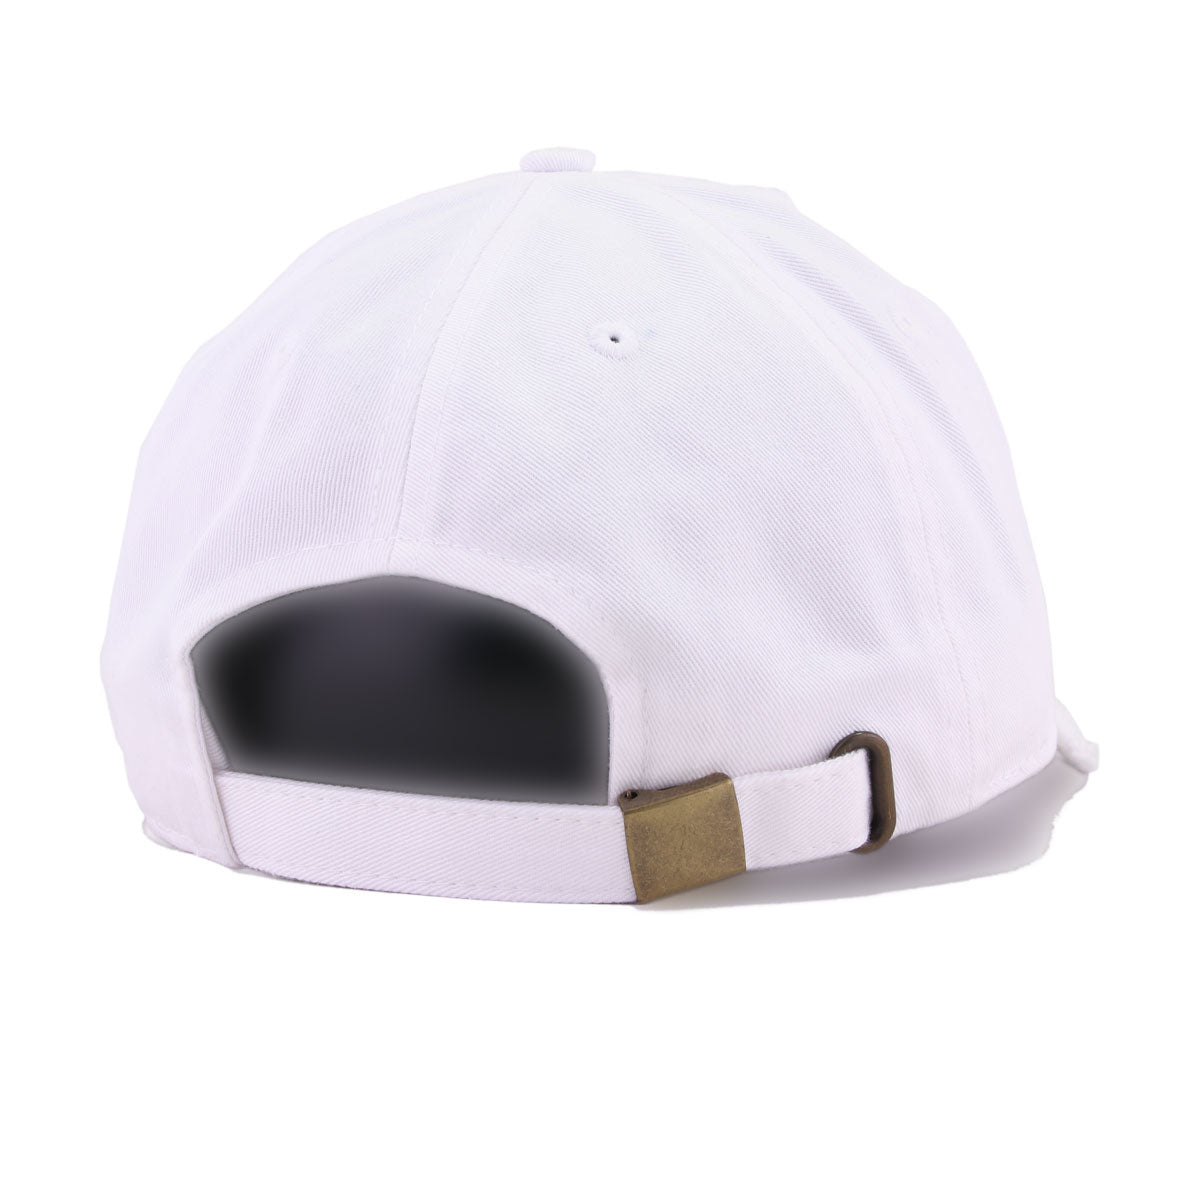 Distressed NASA Worm White KBEthos Vintage Dad Hat